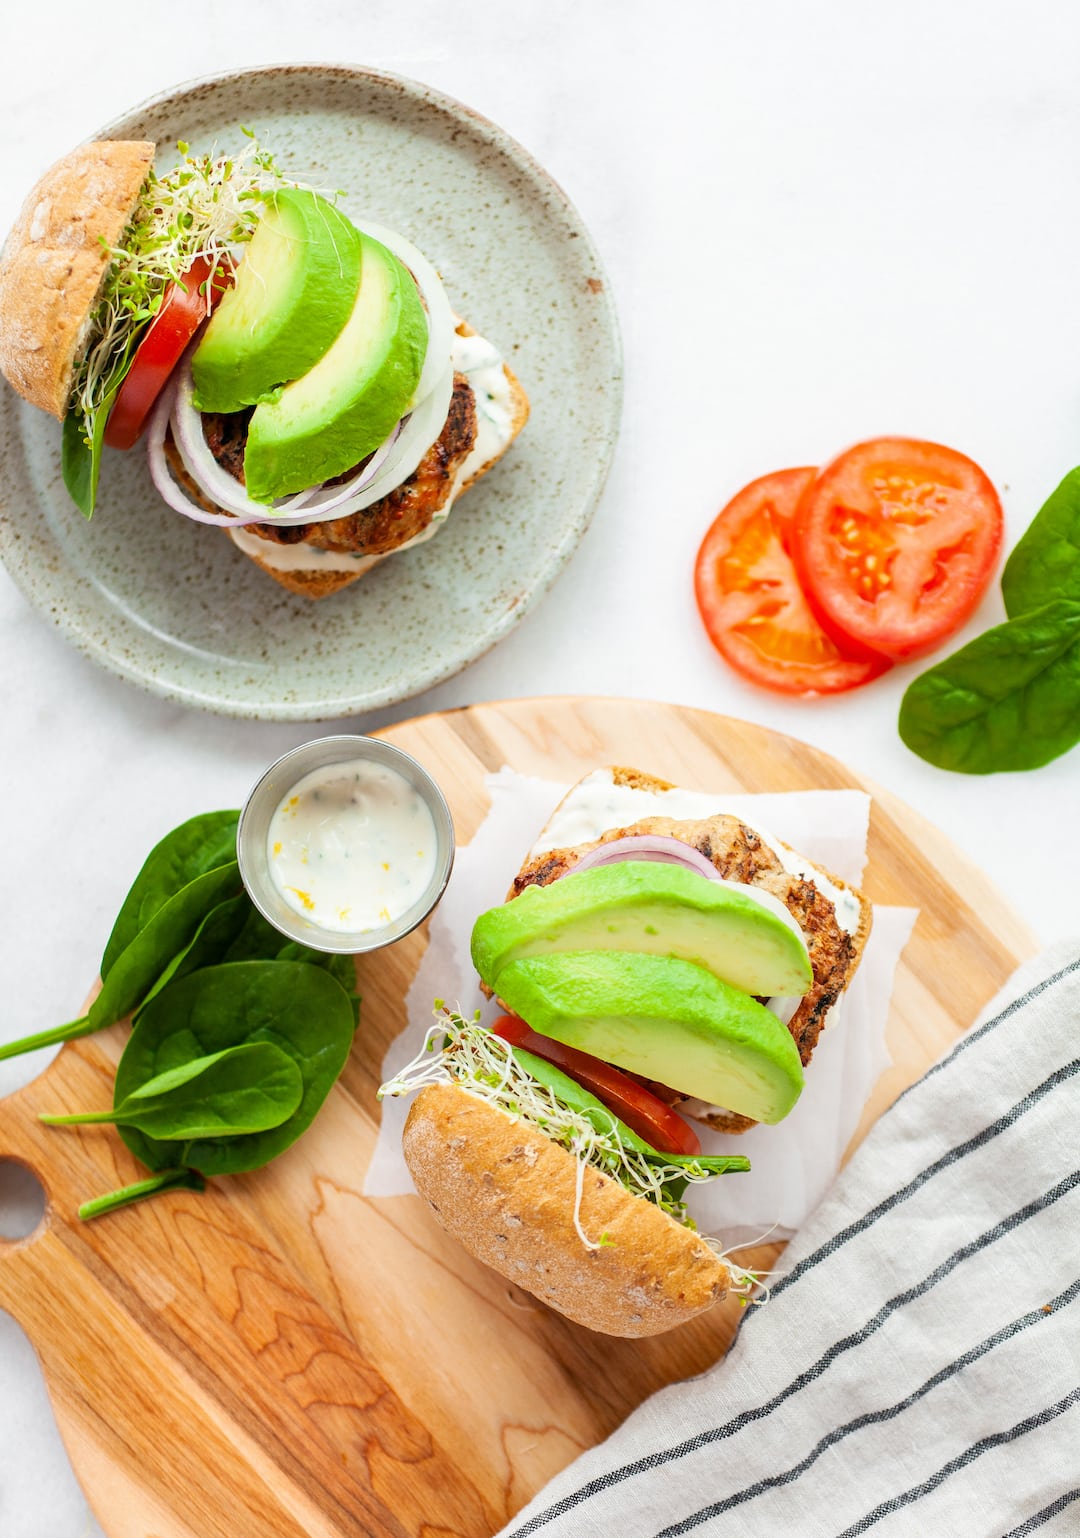 Easy Best Healthy Turkey Burger Recipe with Avocado - gluten free, dairy free